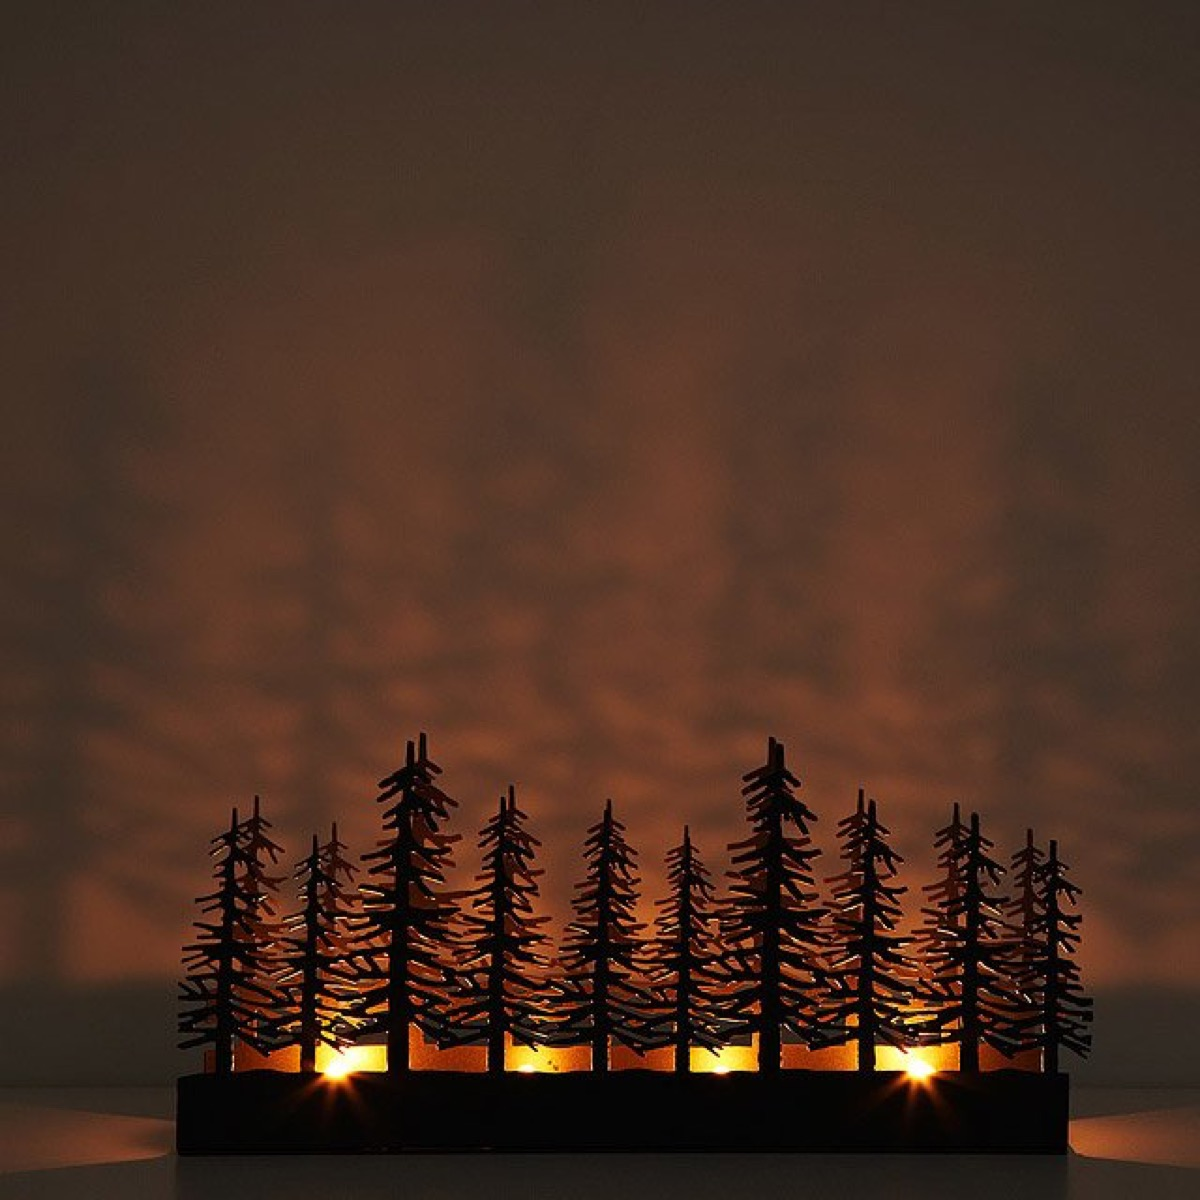 candle holder with cut out tree shapes casting shadows, fall home decor